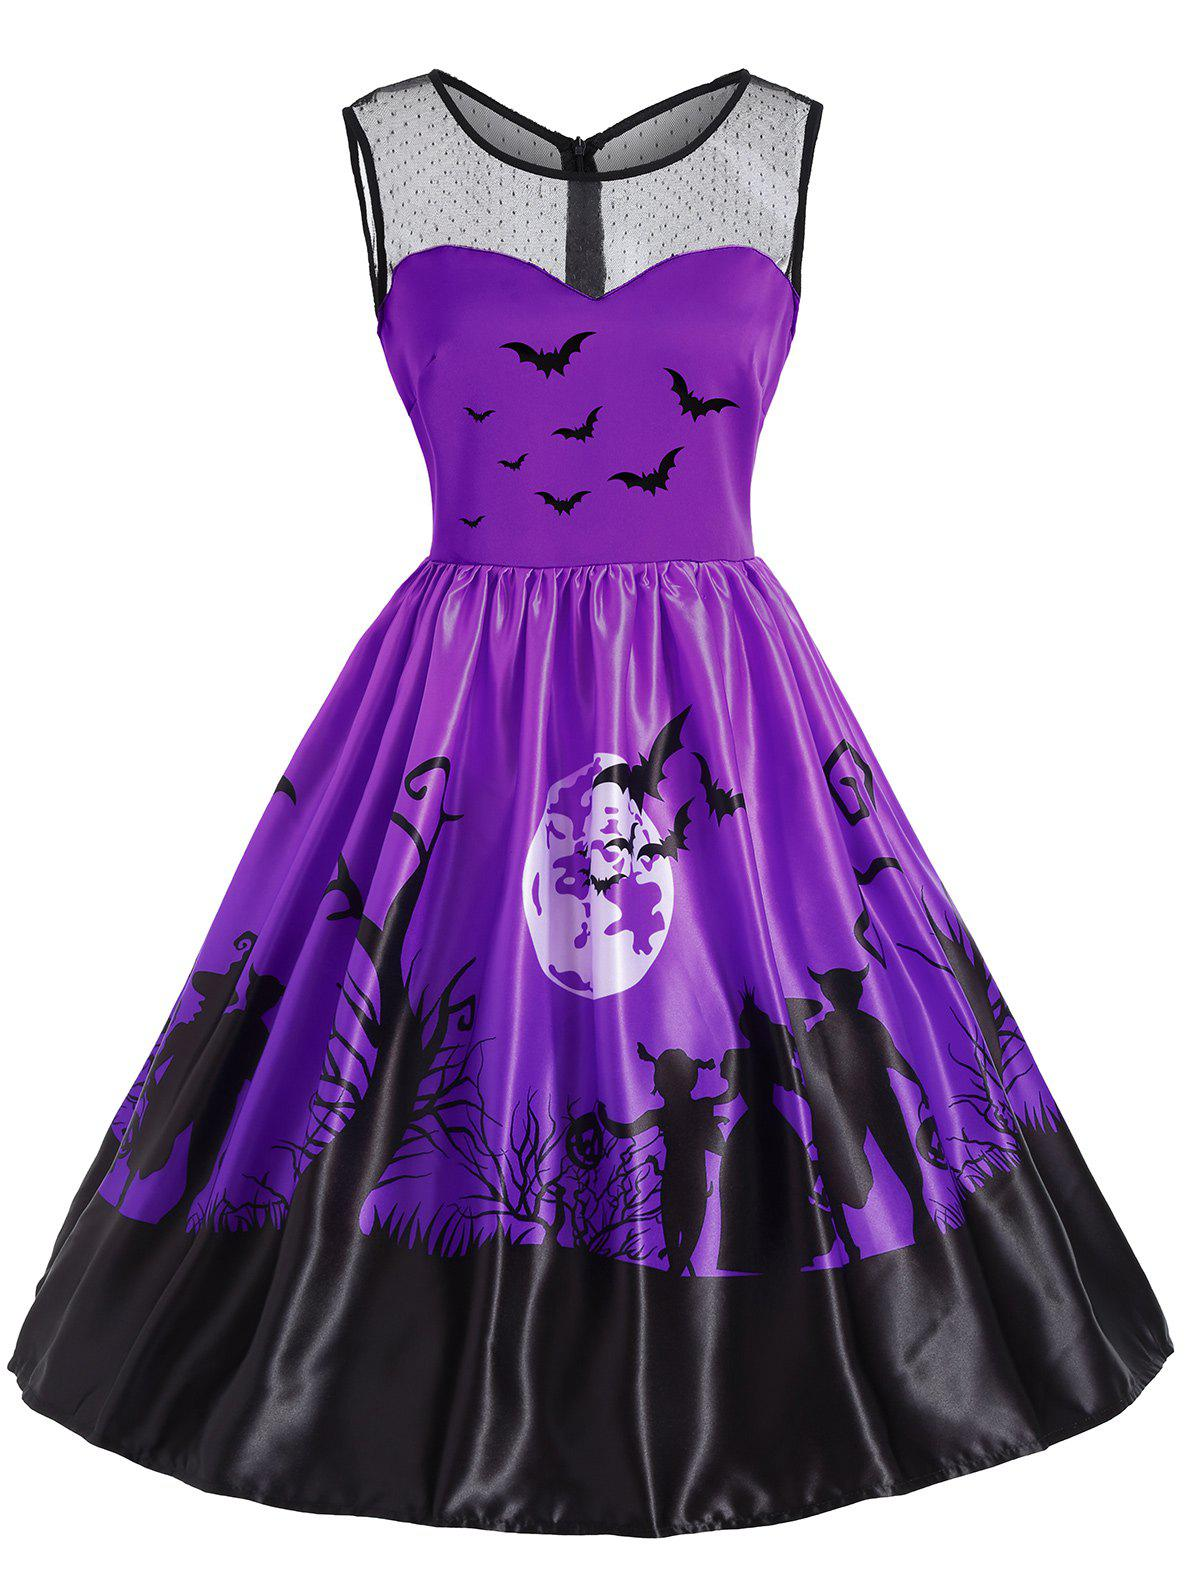 Mesh Yoke Halloween Bat Moon Print DressWOMEN<br><br>Size: 2XL; Color: PURPLE; Style: Vintage; Material: Cotton,Polyester; Silhouette: A-Line; Dresses Length: Knee-Length; Neckline: Round Collar; Sleeve Length: Sleeveless; Embellishment: Mesh; Pattern Type: Ombre,Print; With Belt: No; Season: Fall,Spring,Summer; Weight: 0.3500kg; Package Contents: 1 x Dress;